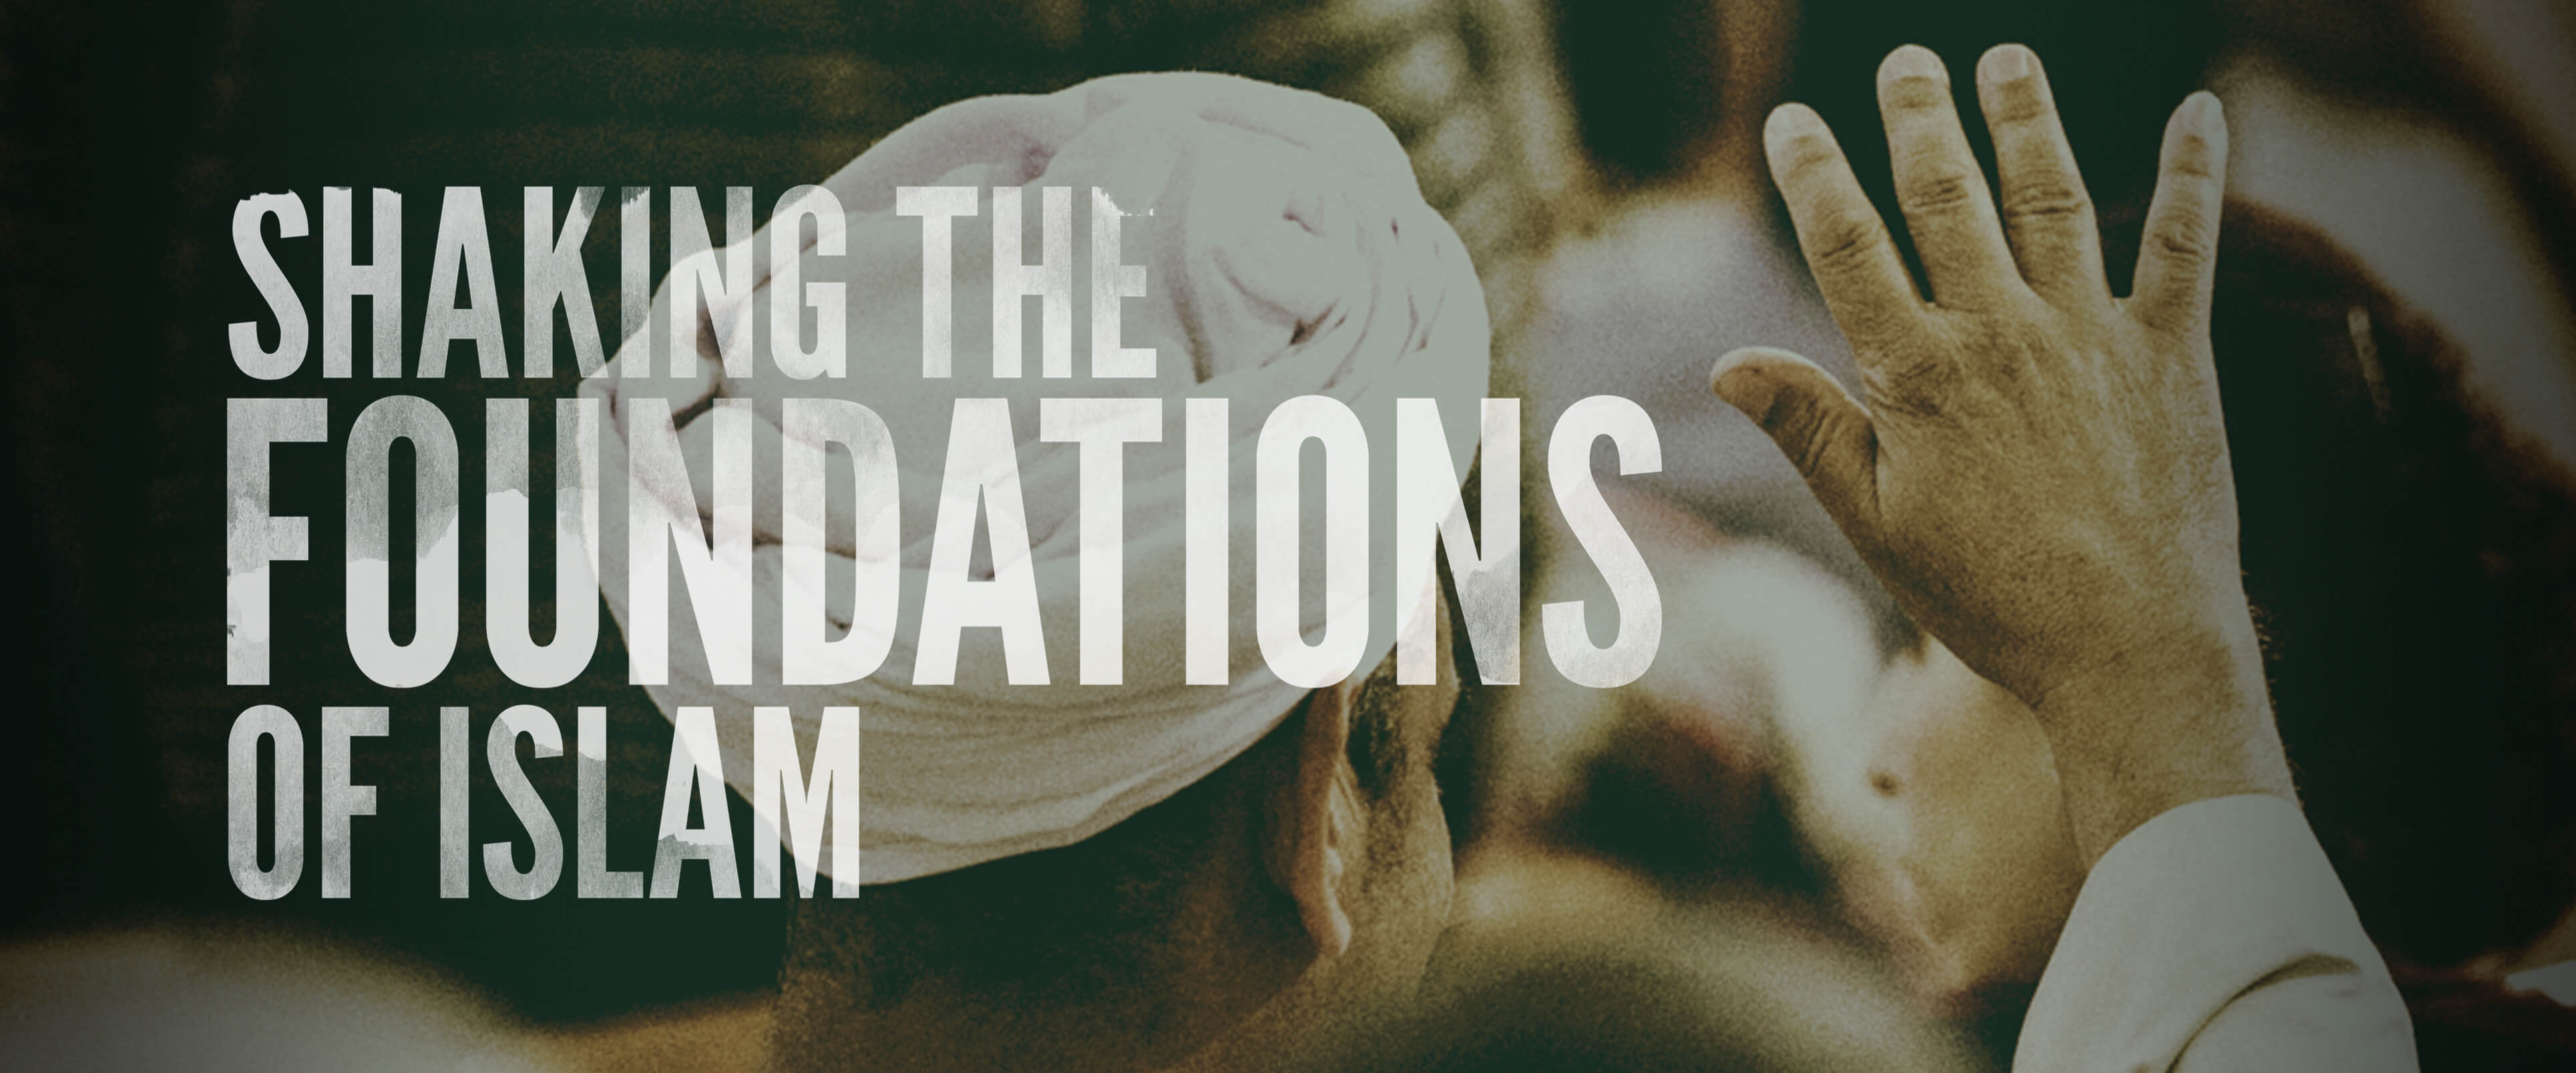 Shaking the Foundation of Islam